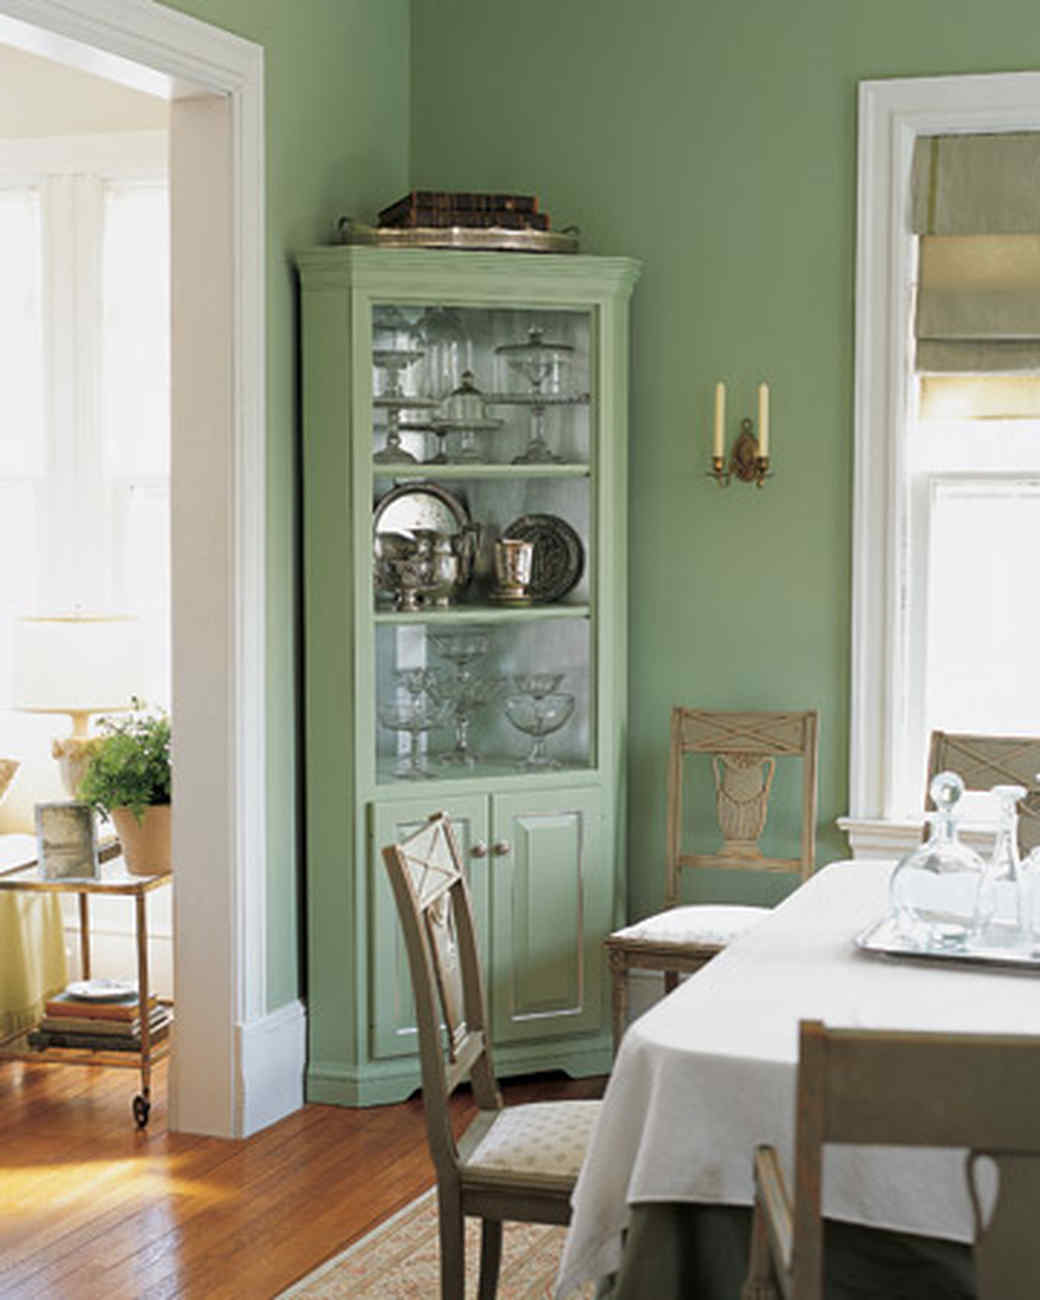 Corner Dining Room Cabinet: An Eye-Catching Silver Leaf Cabinet